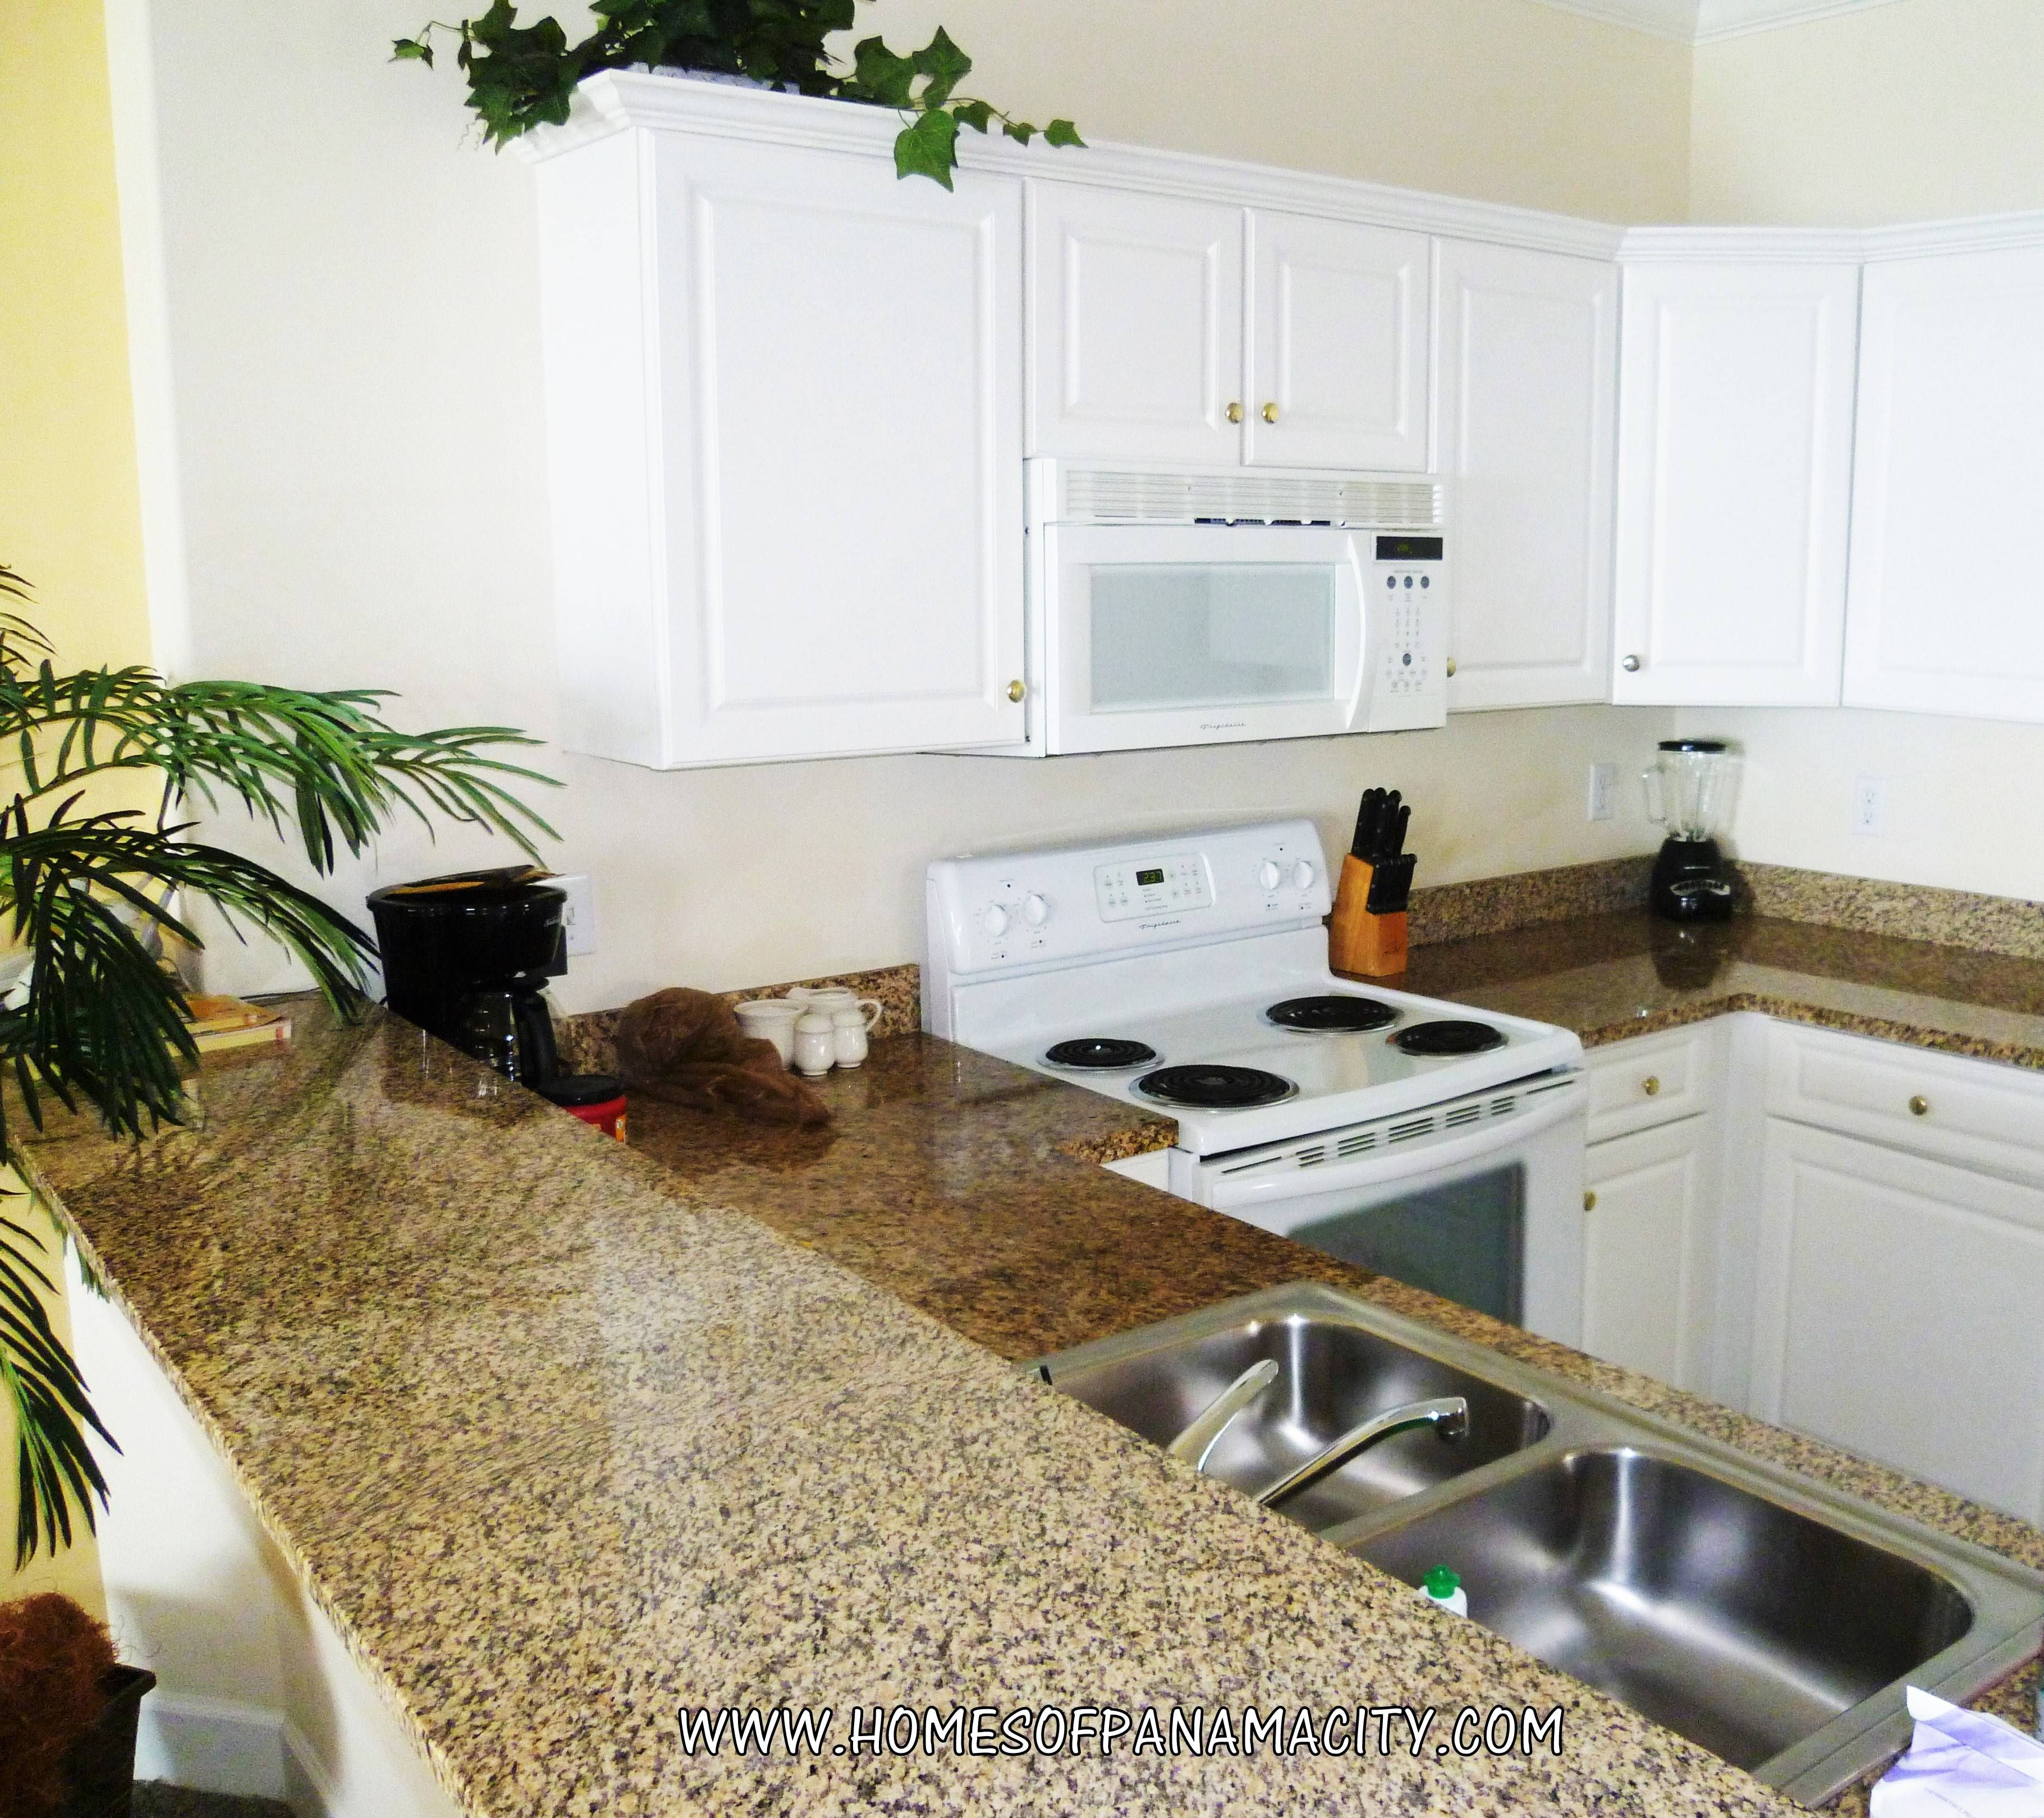 Florida Condo Decorating Ideas: Condo Just Listed In Panama City Beach! Waterfront Views